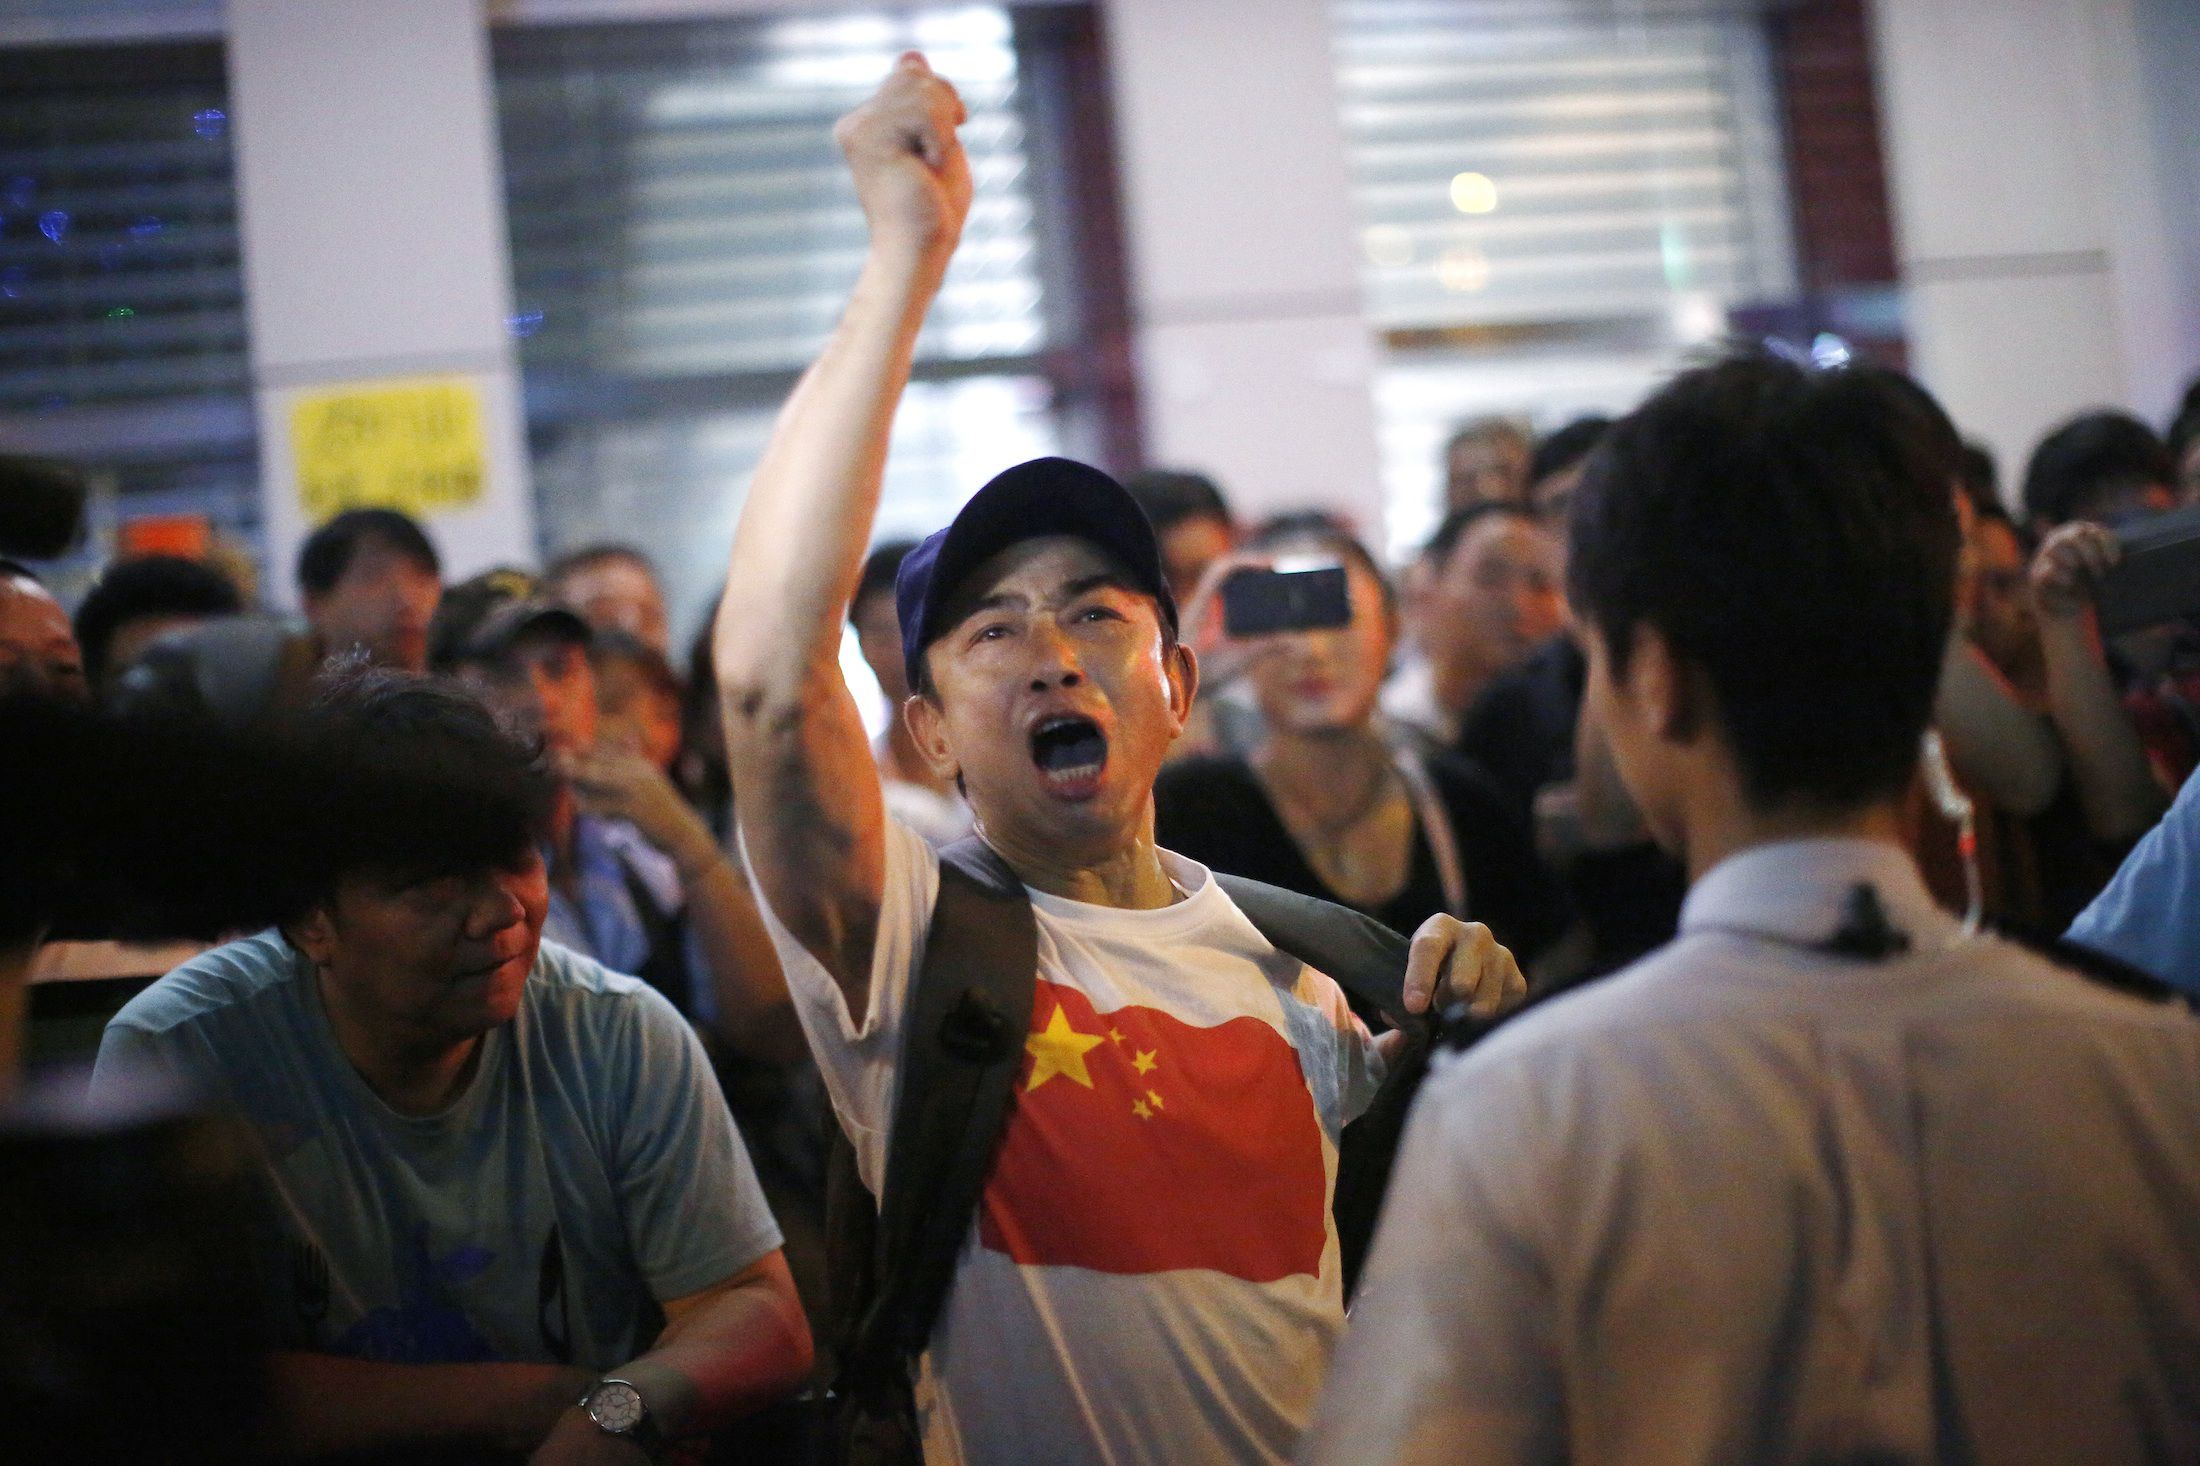 An anti-Occupy Central protester argues with pro-democracy protesters on a main street at Hong Kong